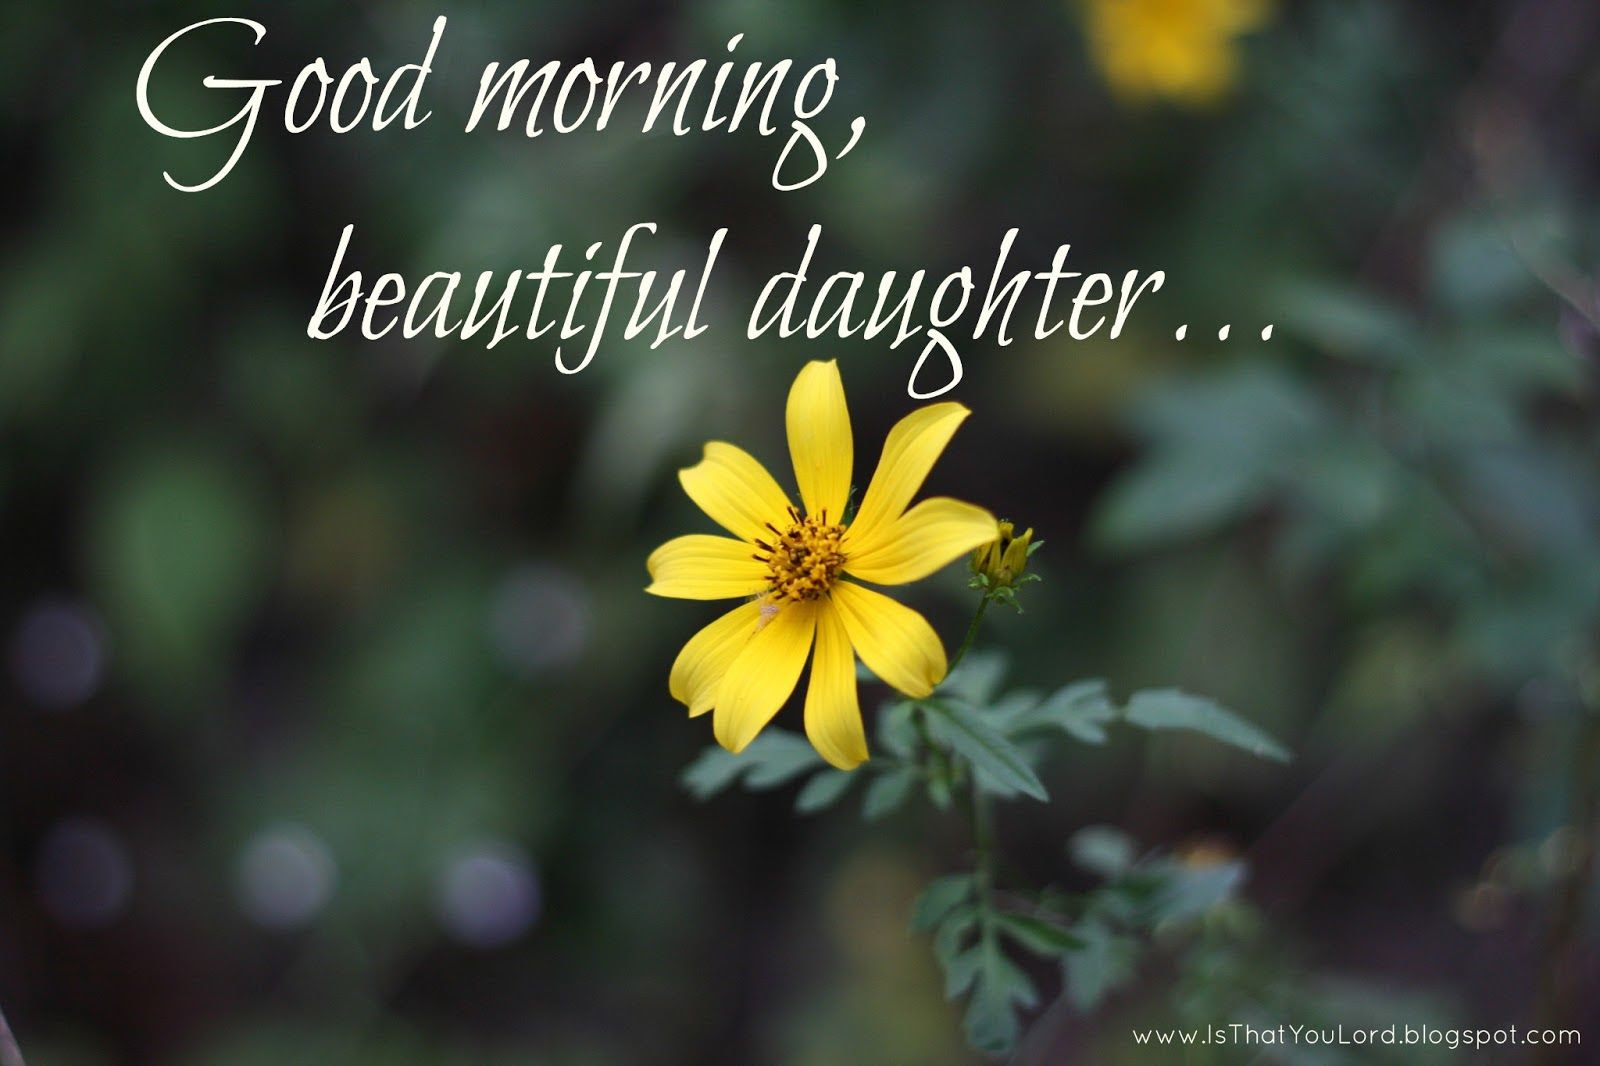 Good Morning Beautiful Daughter Pictures Photos And Images For